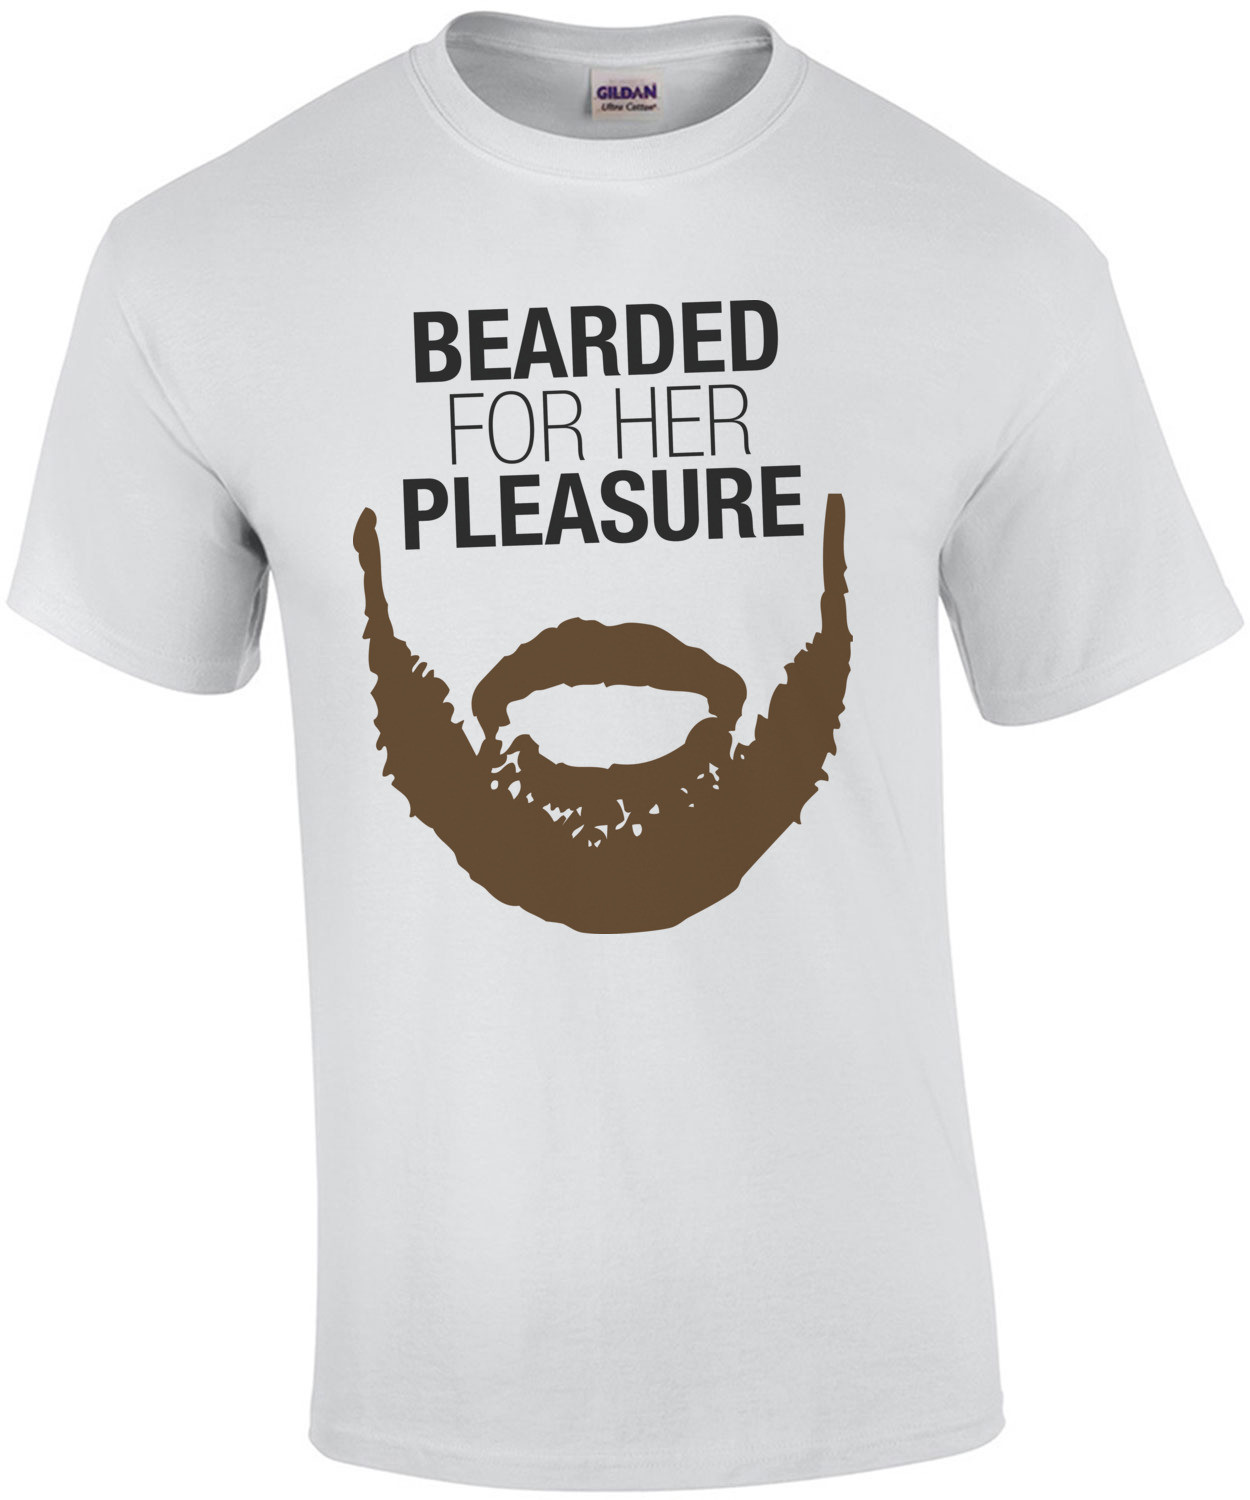 Bearded For Her Pleasure T-Shirt